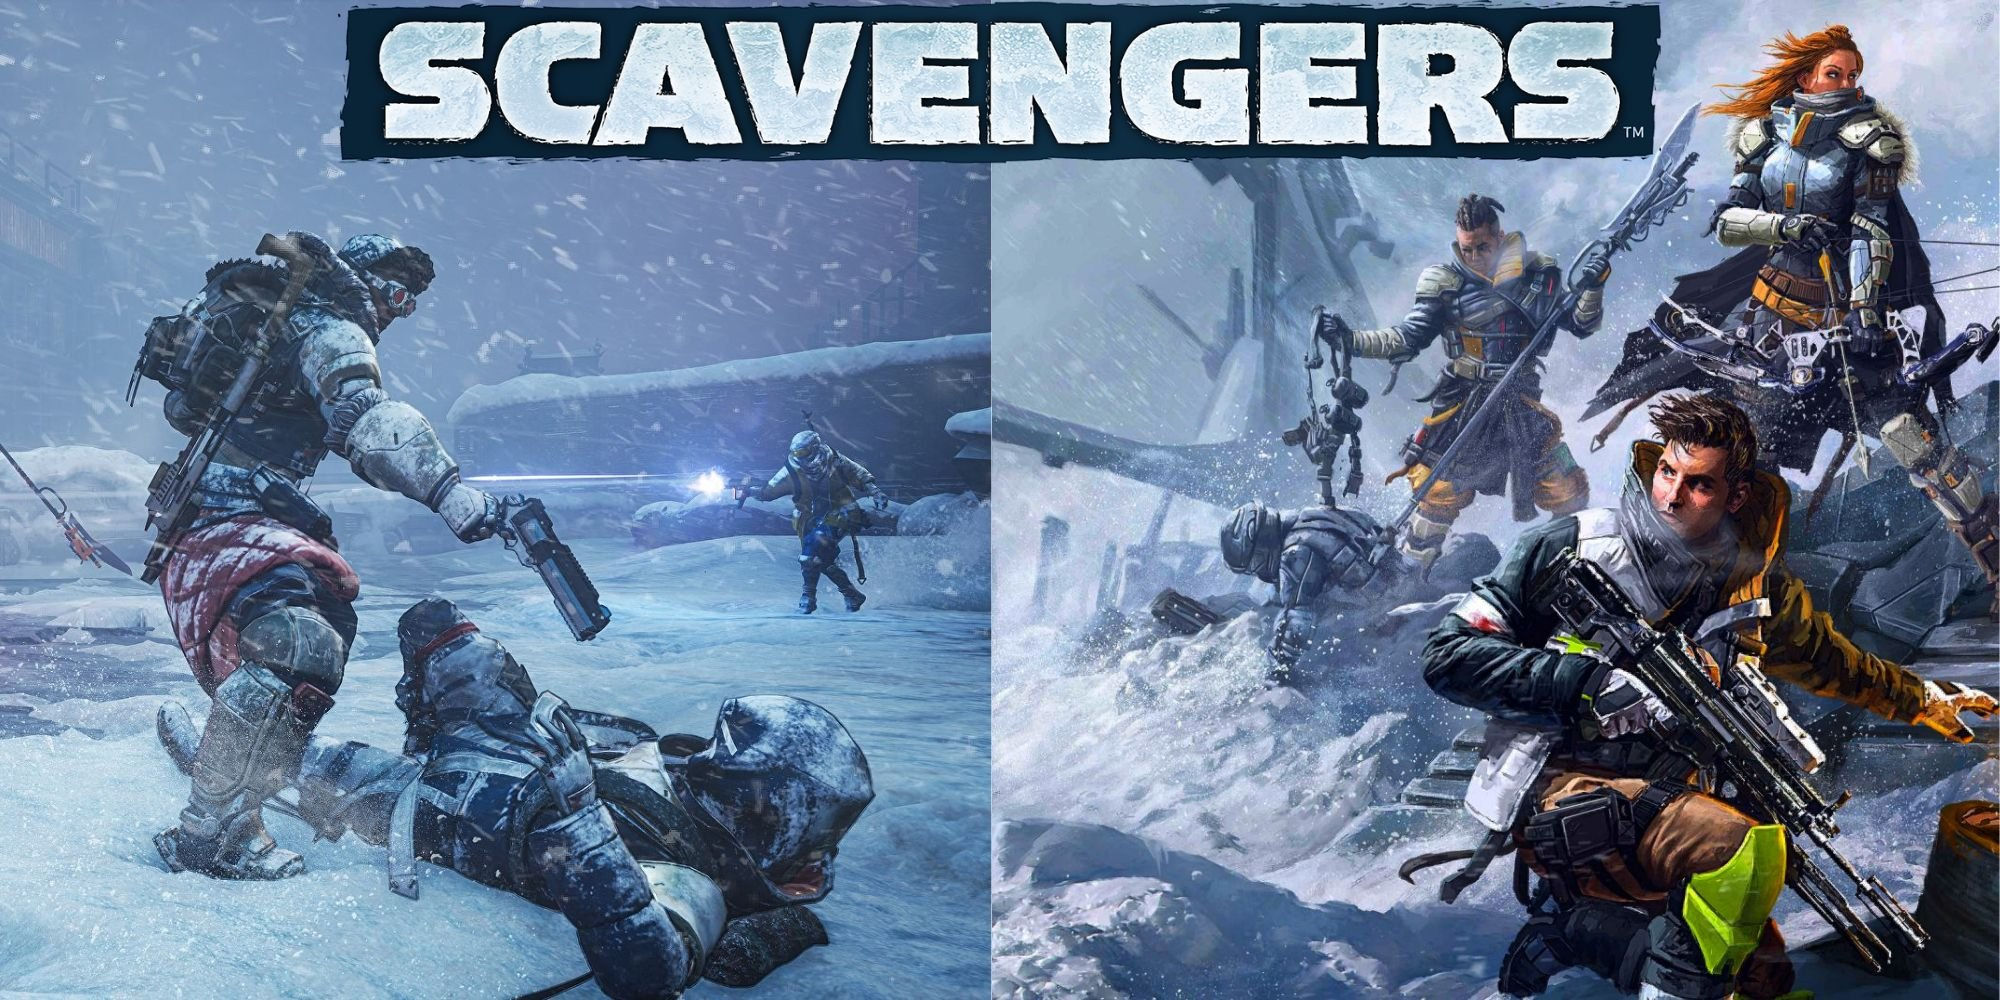 10 Things You Need To Know About Scavengers, The Free-To-Play Shooter